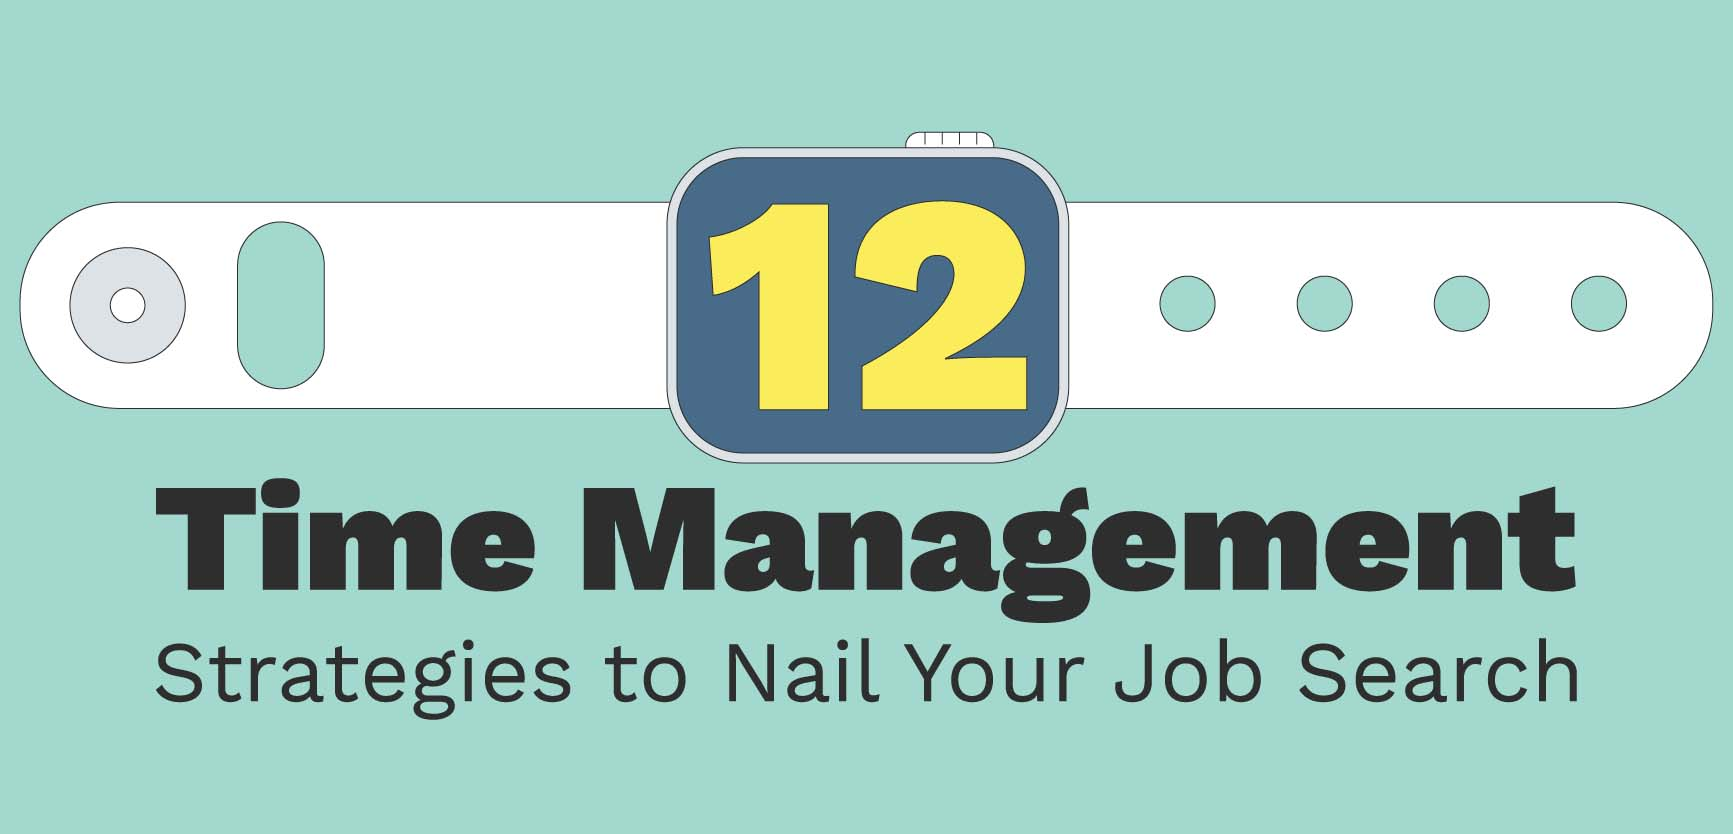 12 Time Management Strategies for Nailing Your Job Search